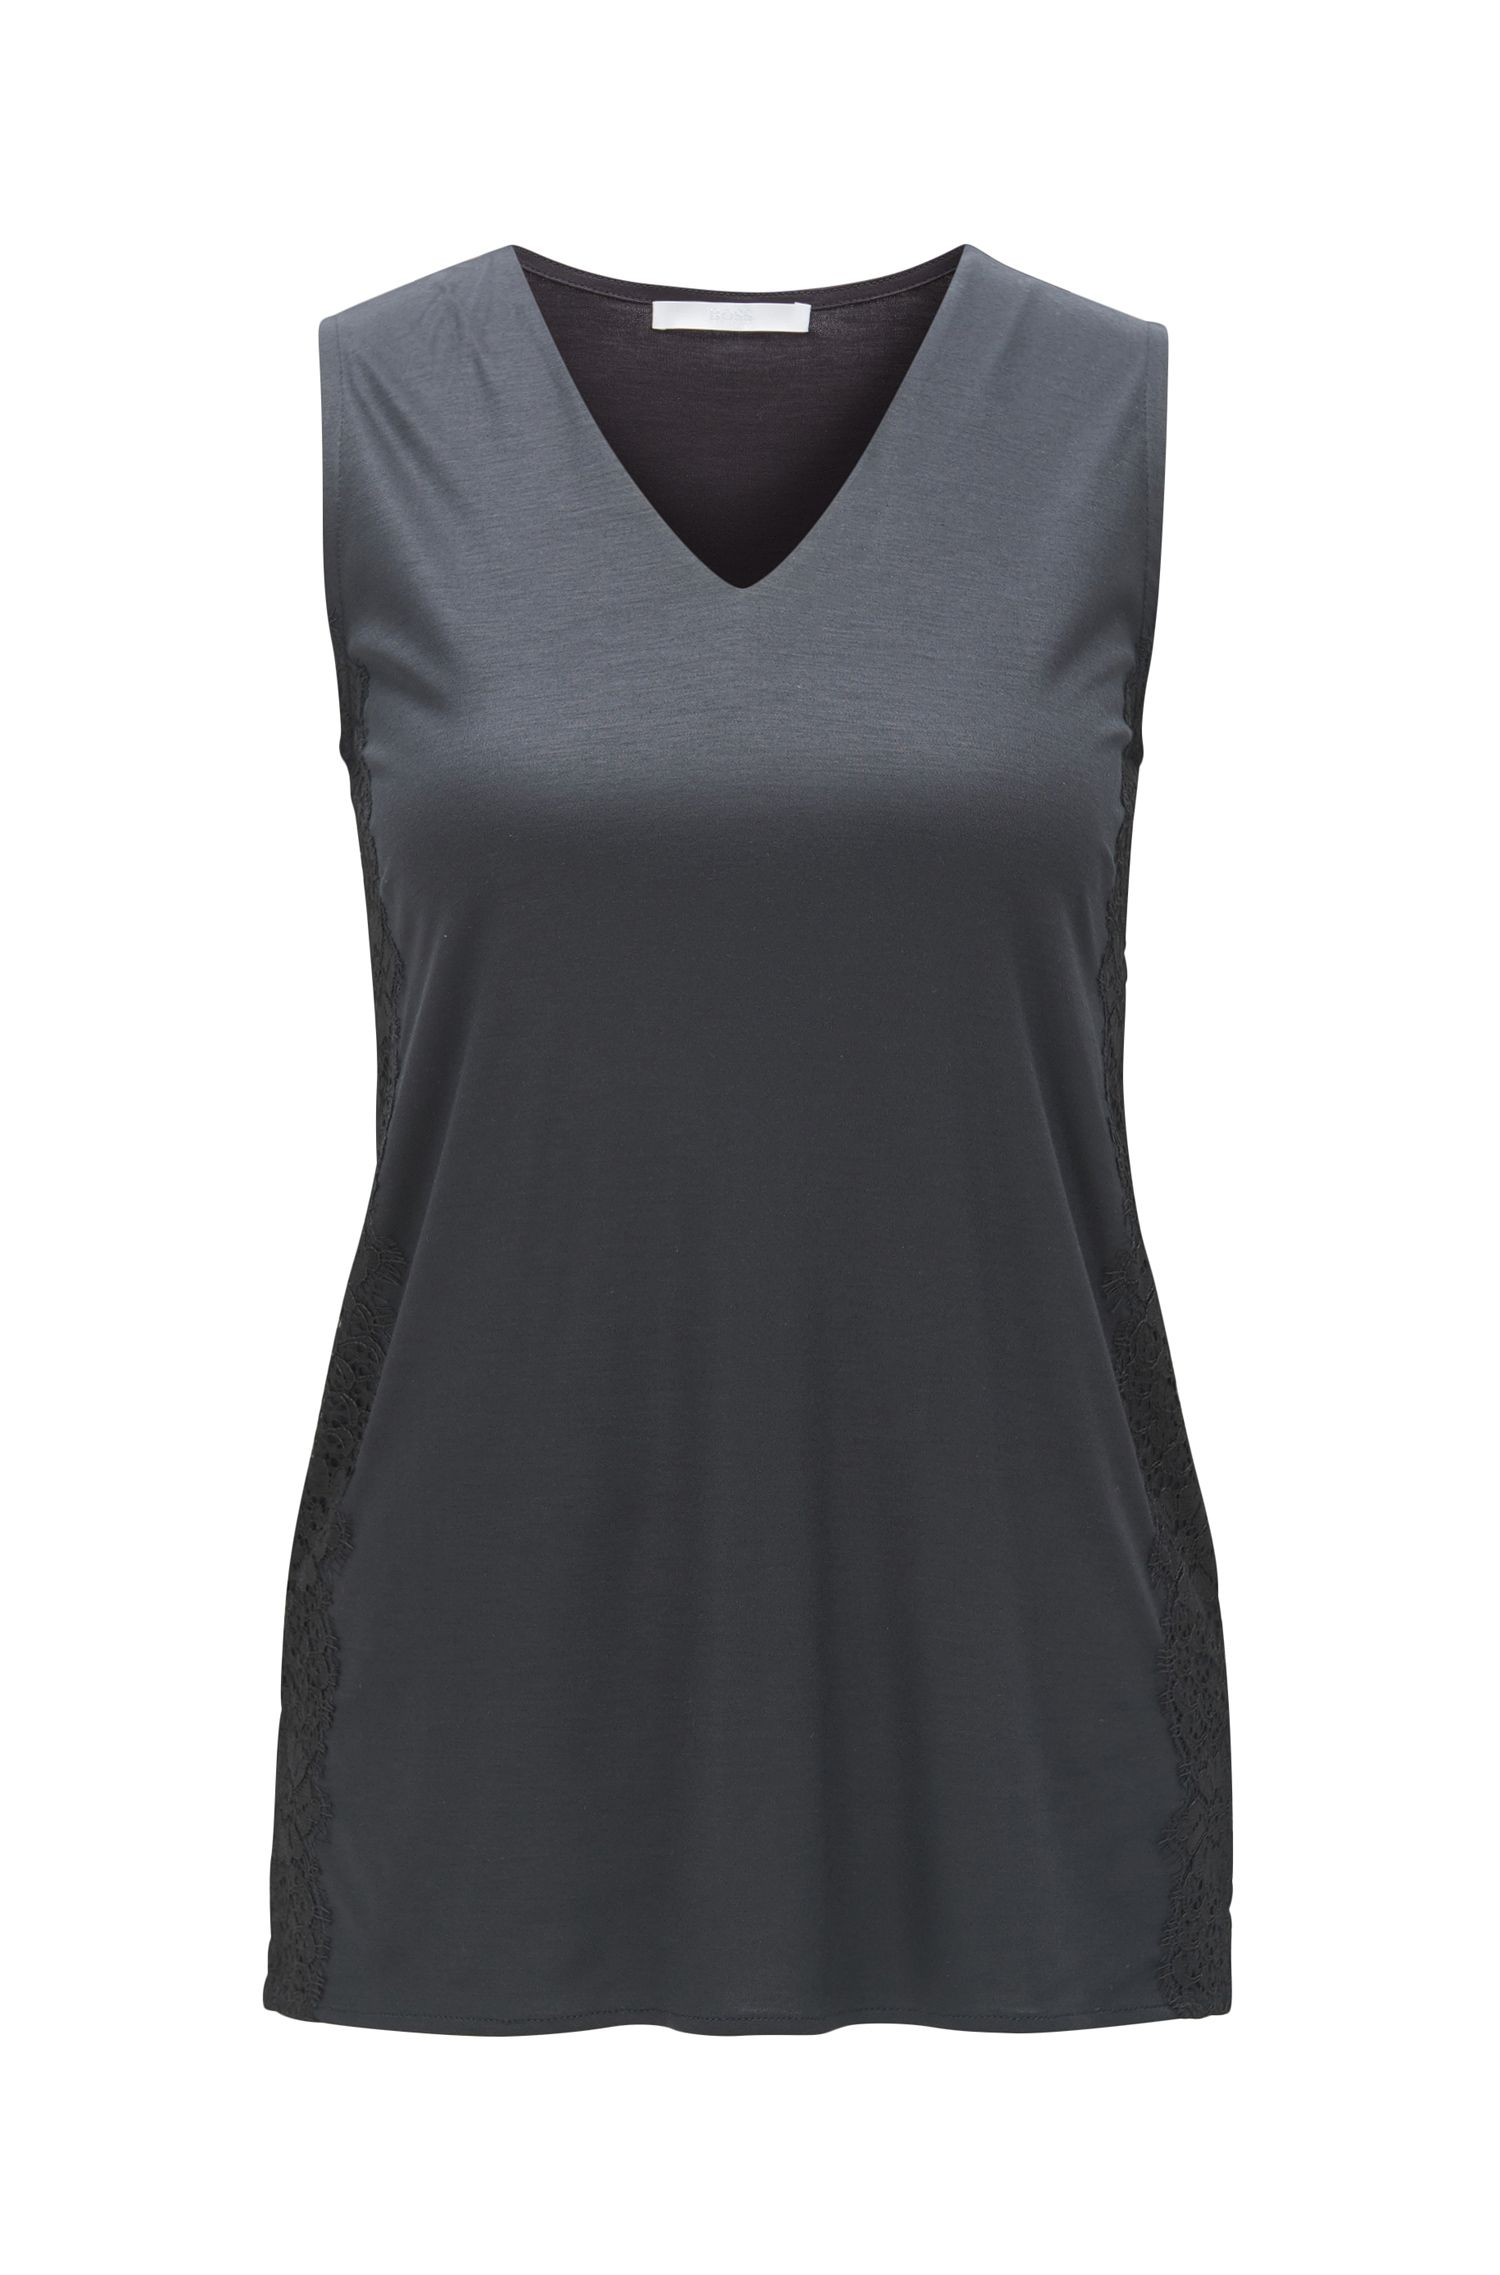 V-neck top in soft modal